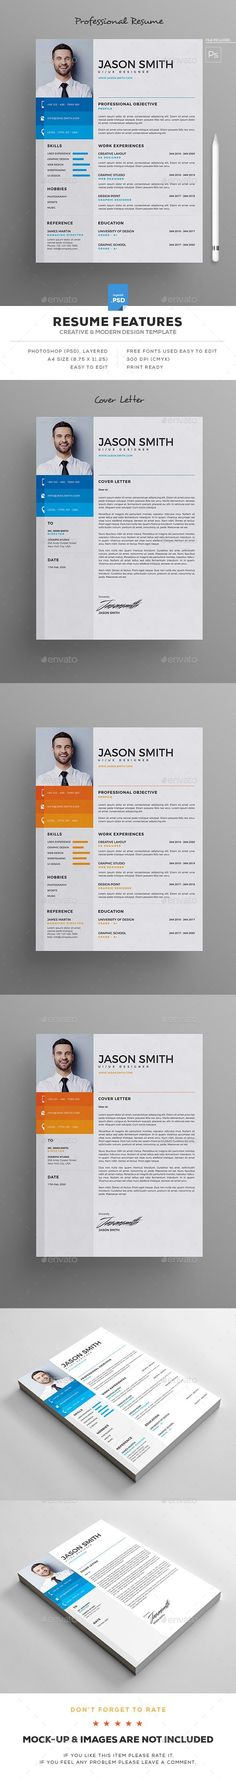 Business infographic & data visualisation Business infographic : #Resume Resumes Stationery Download here: graphicriver…. Infographic Description Business infographic : #Resume Resumes Stationery Download here: graphicriver.net/ – Infographic Source – - #Business